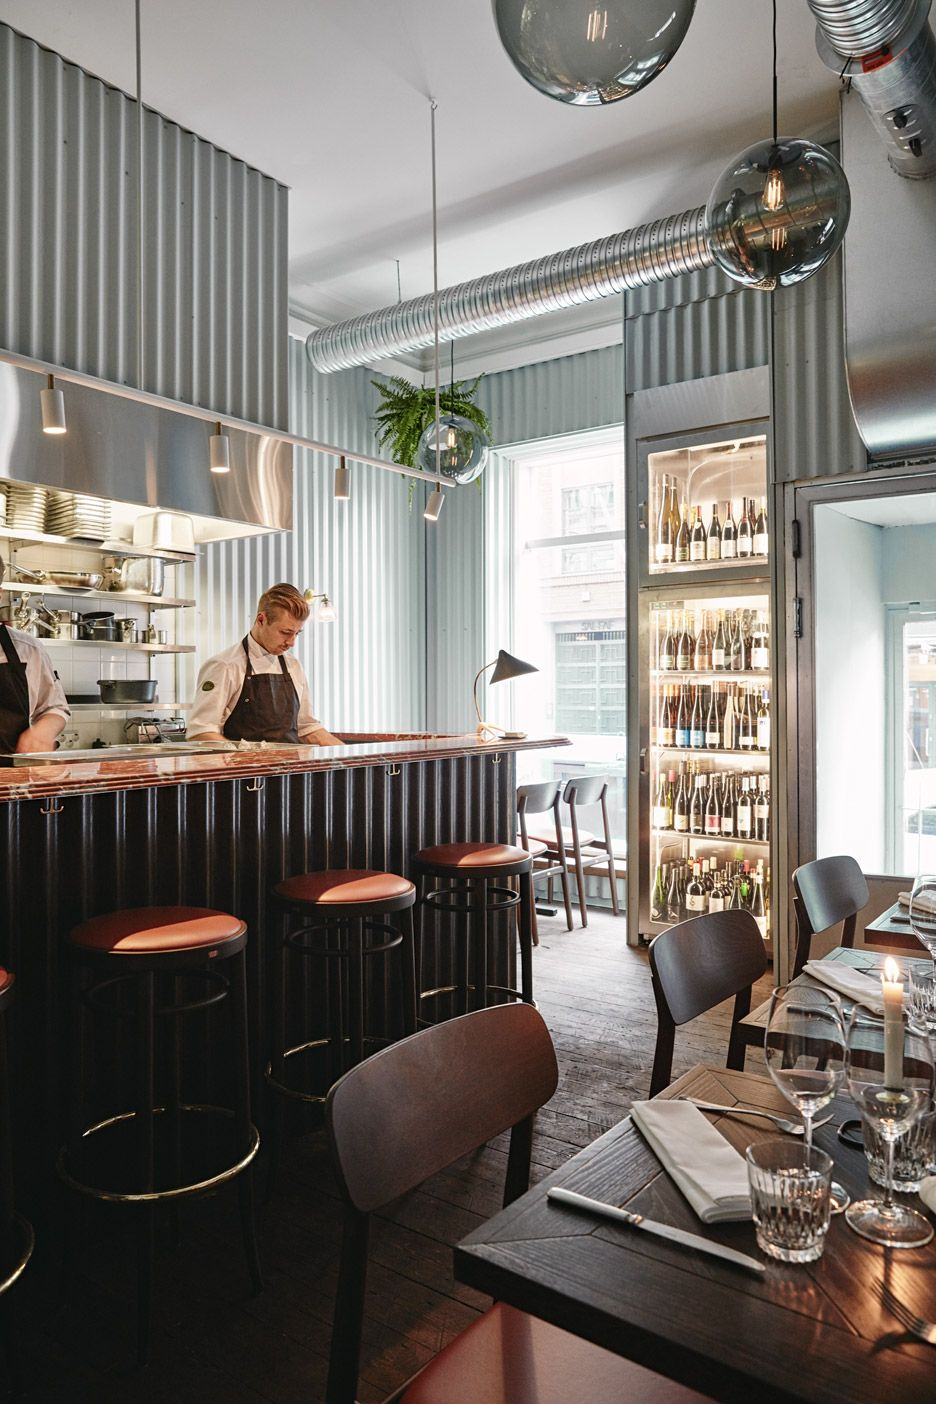 restaurant goes full on industrial chic with corrugated metal walls bbq restaurant designcorrugated metal wall - Metal Wall Designs